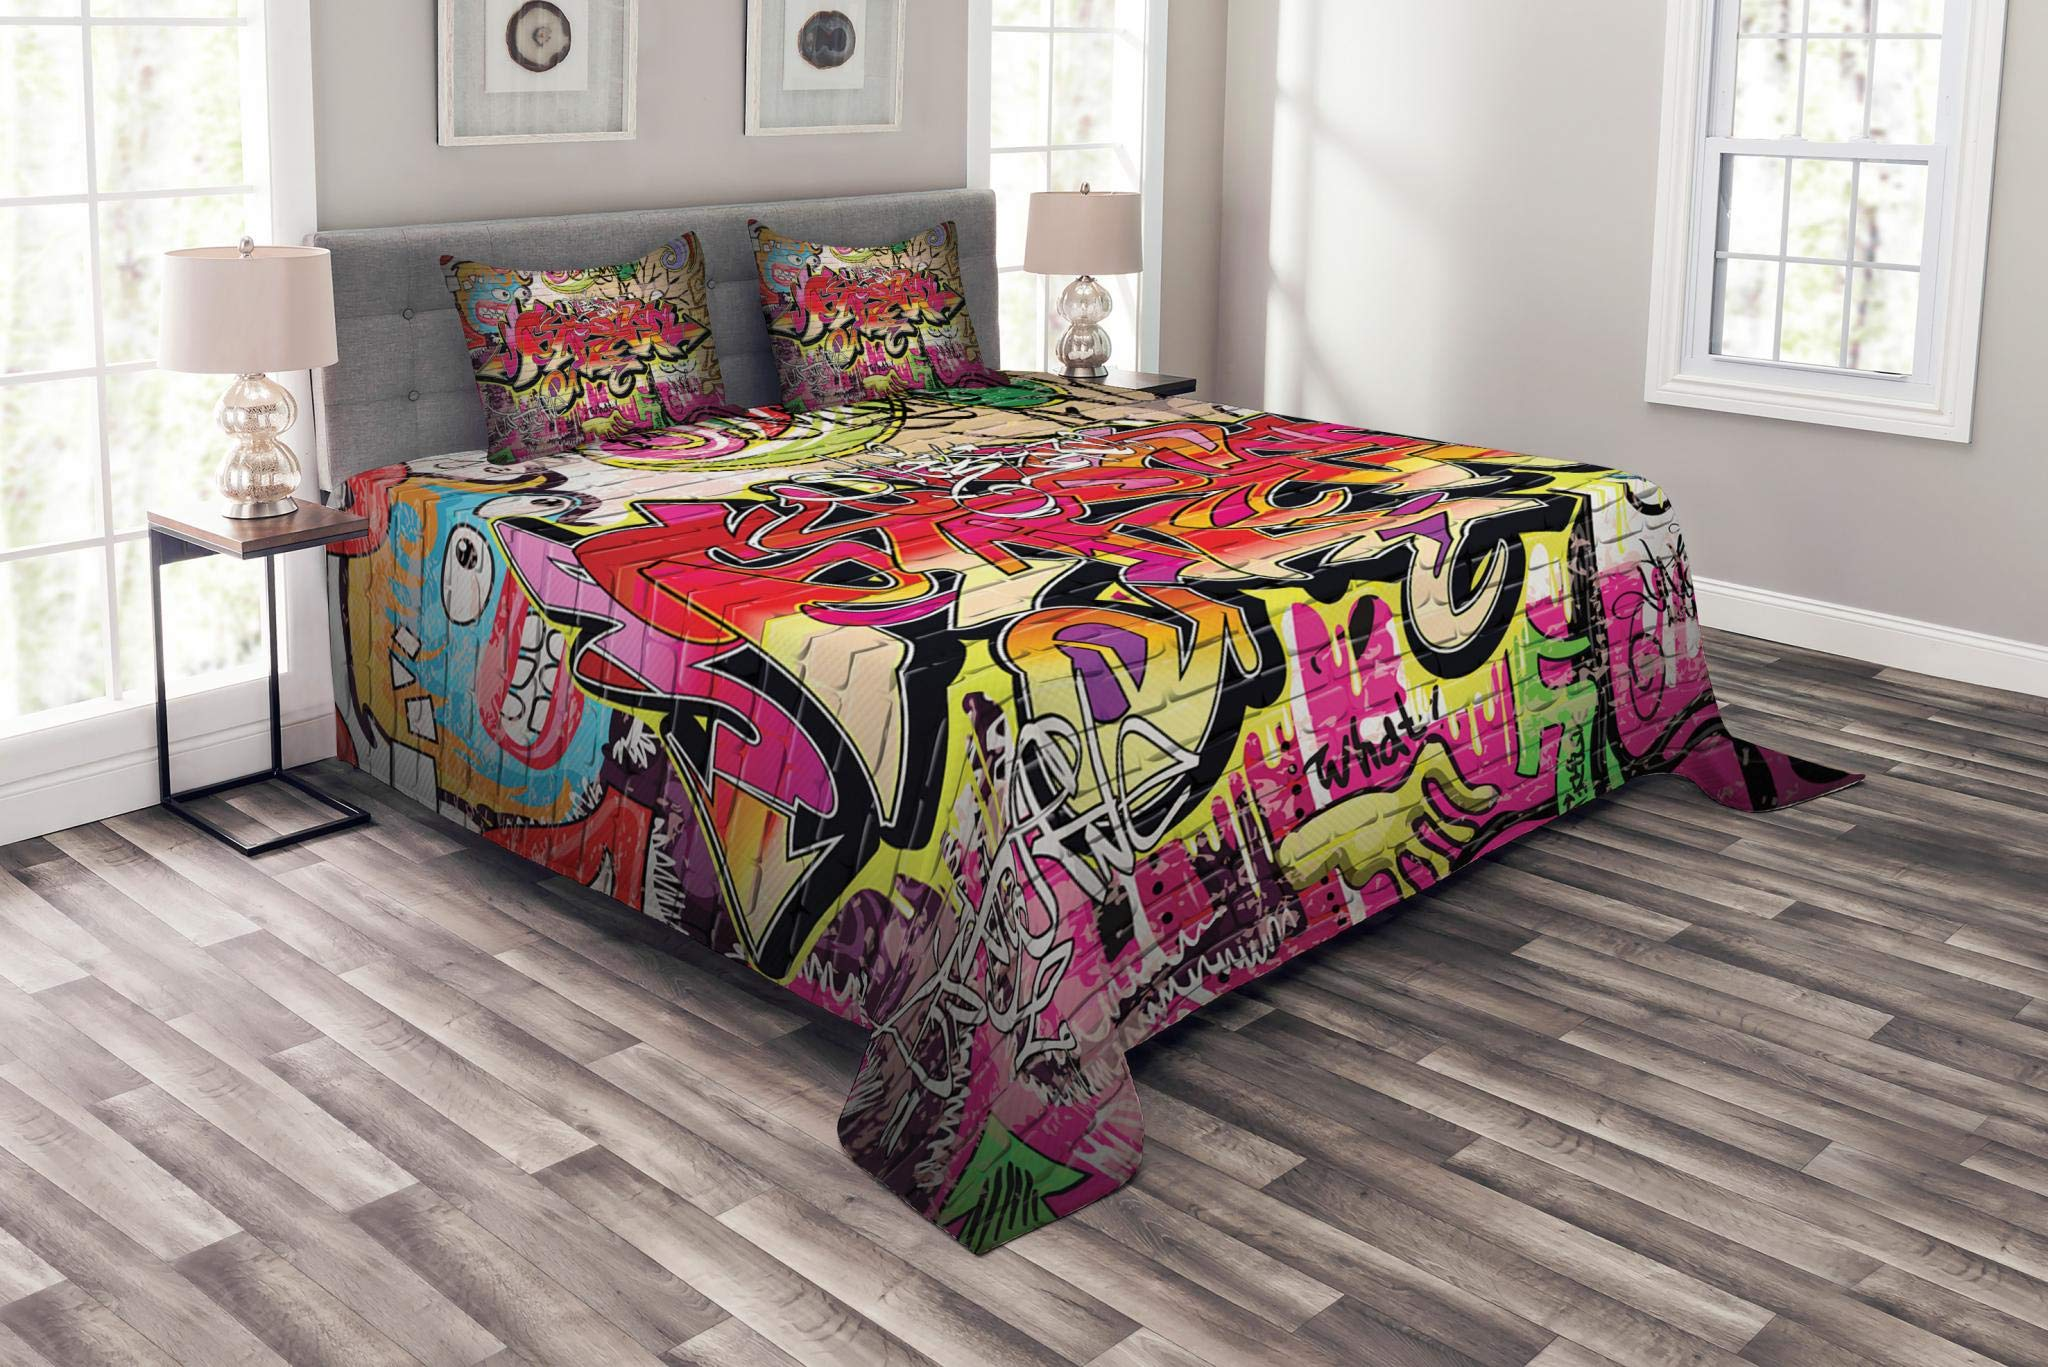 Lunarable Brick Wall Bedspread Set King Size, Graffiti on Wall Urban Street Art with Spray Paint Tagger Underground Theme, Decorative Quilted 3 Piece Coverlet Set with 2 Pillow Shams, Multicolor